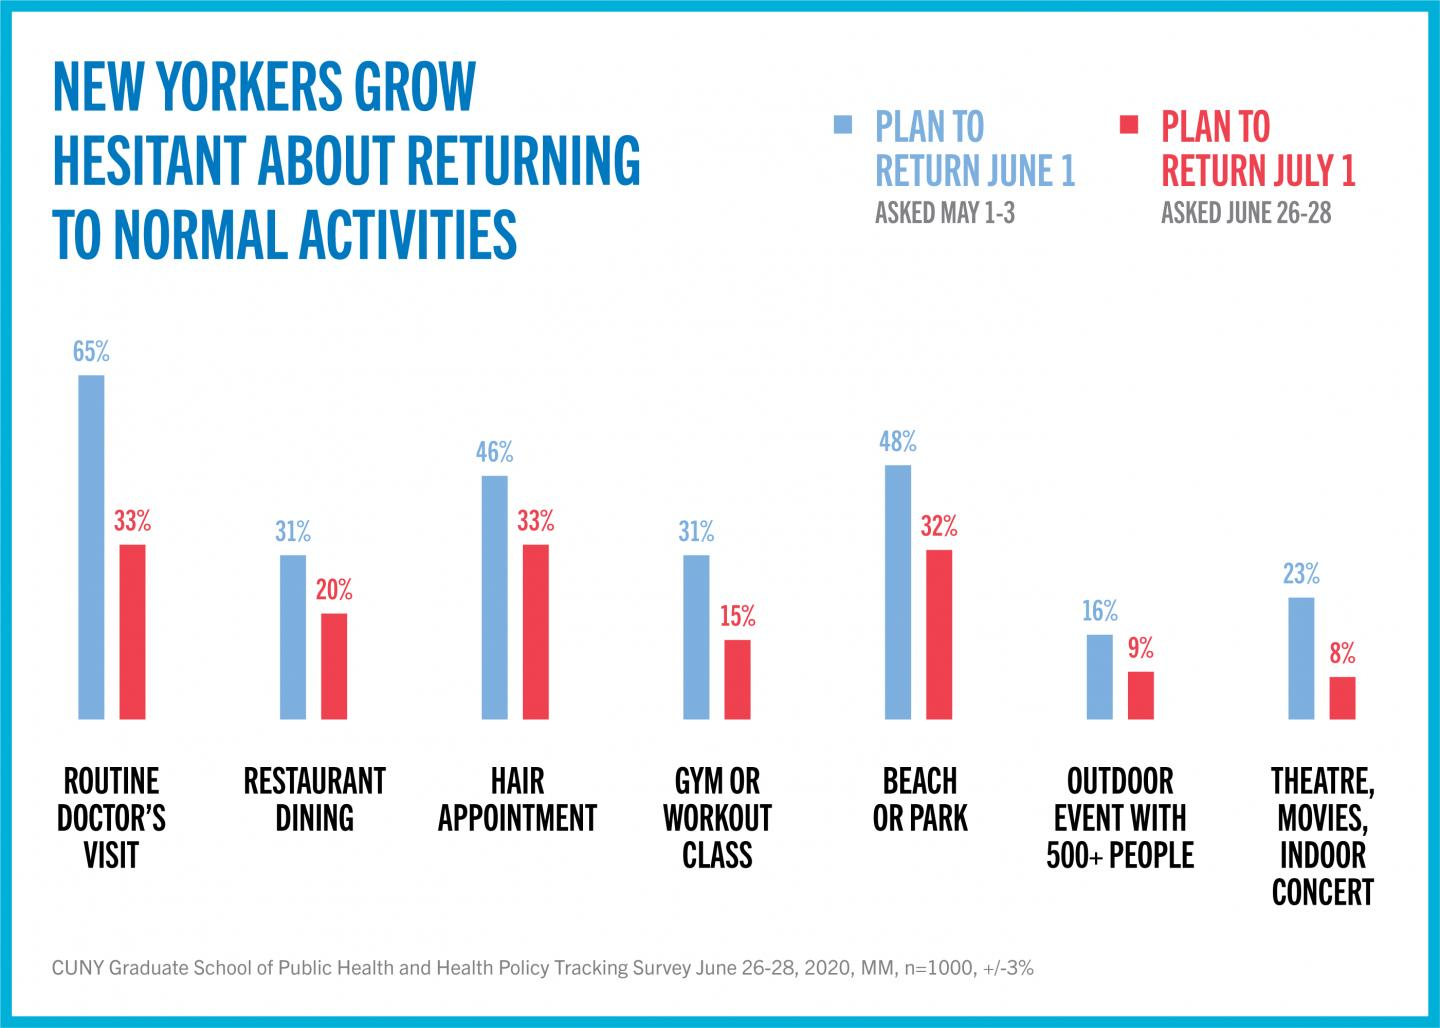 New Yorkers grow hesitant about returning to normal activities